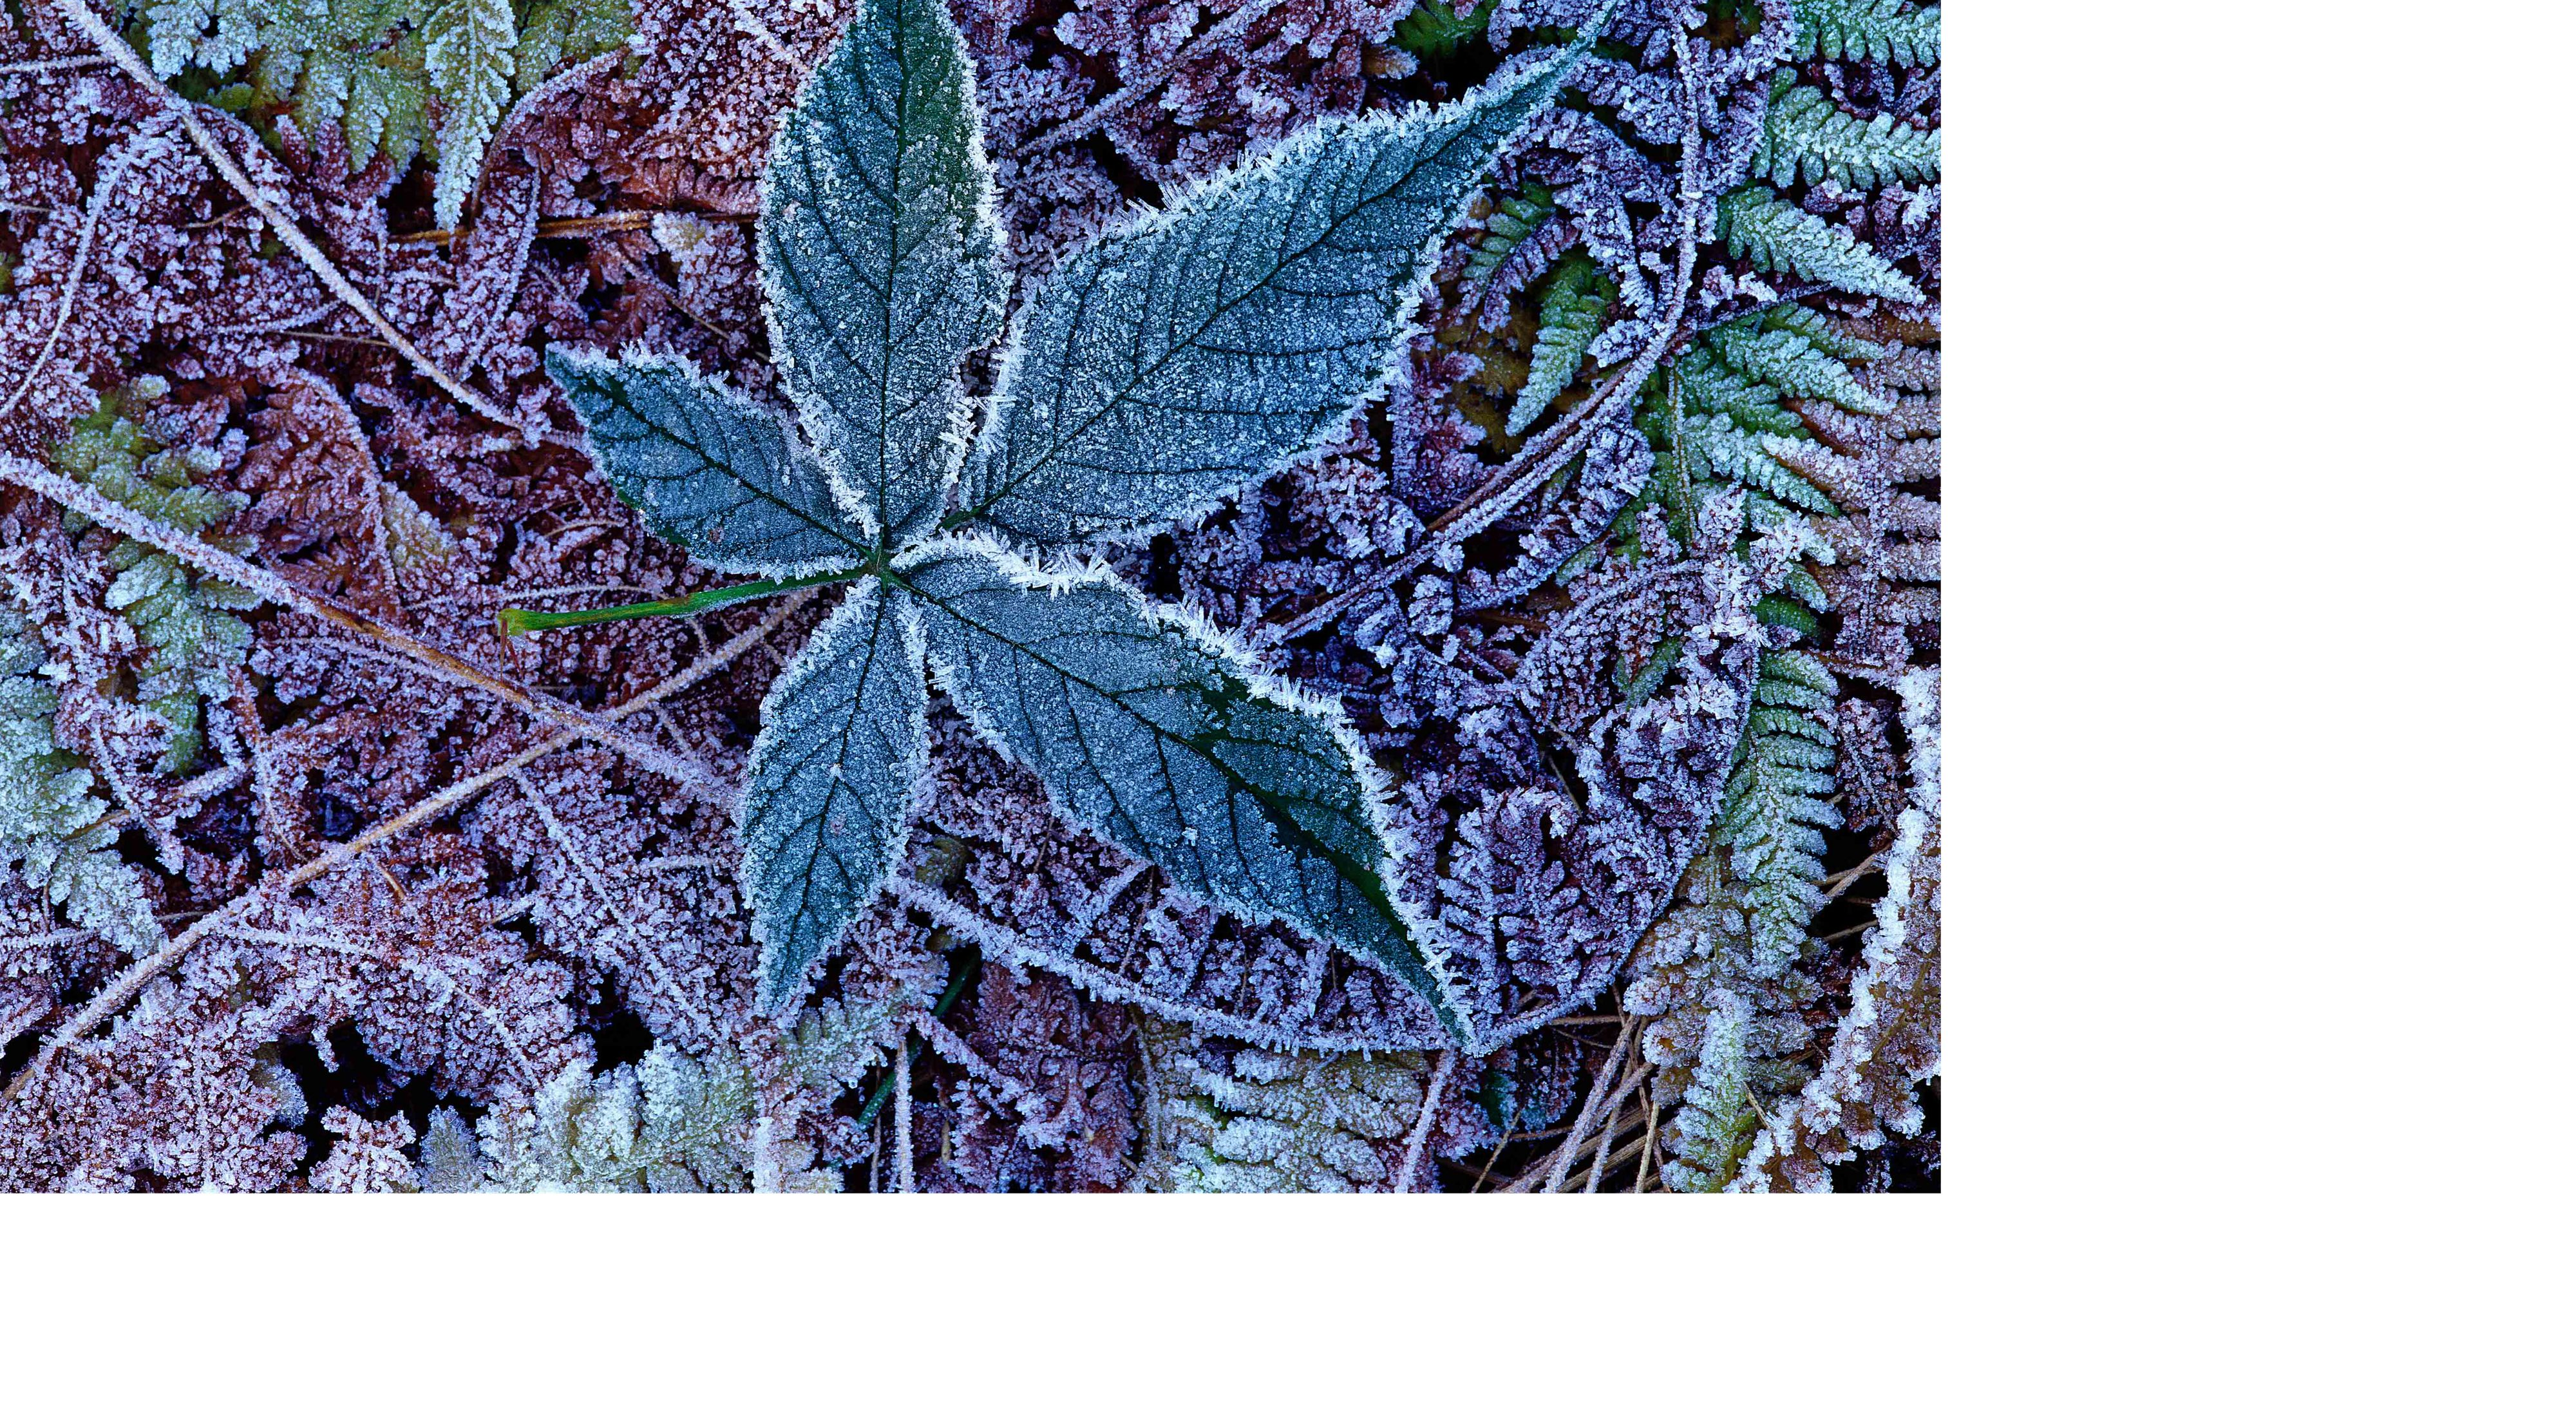 A winter leaf is dusted with frost.